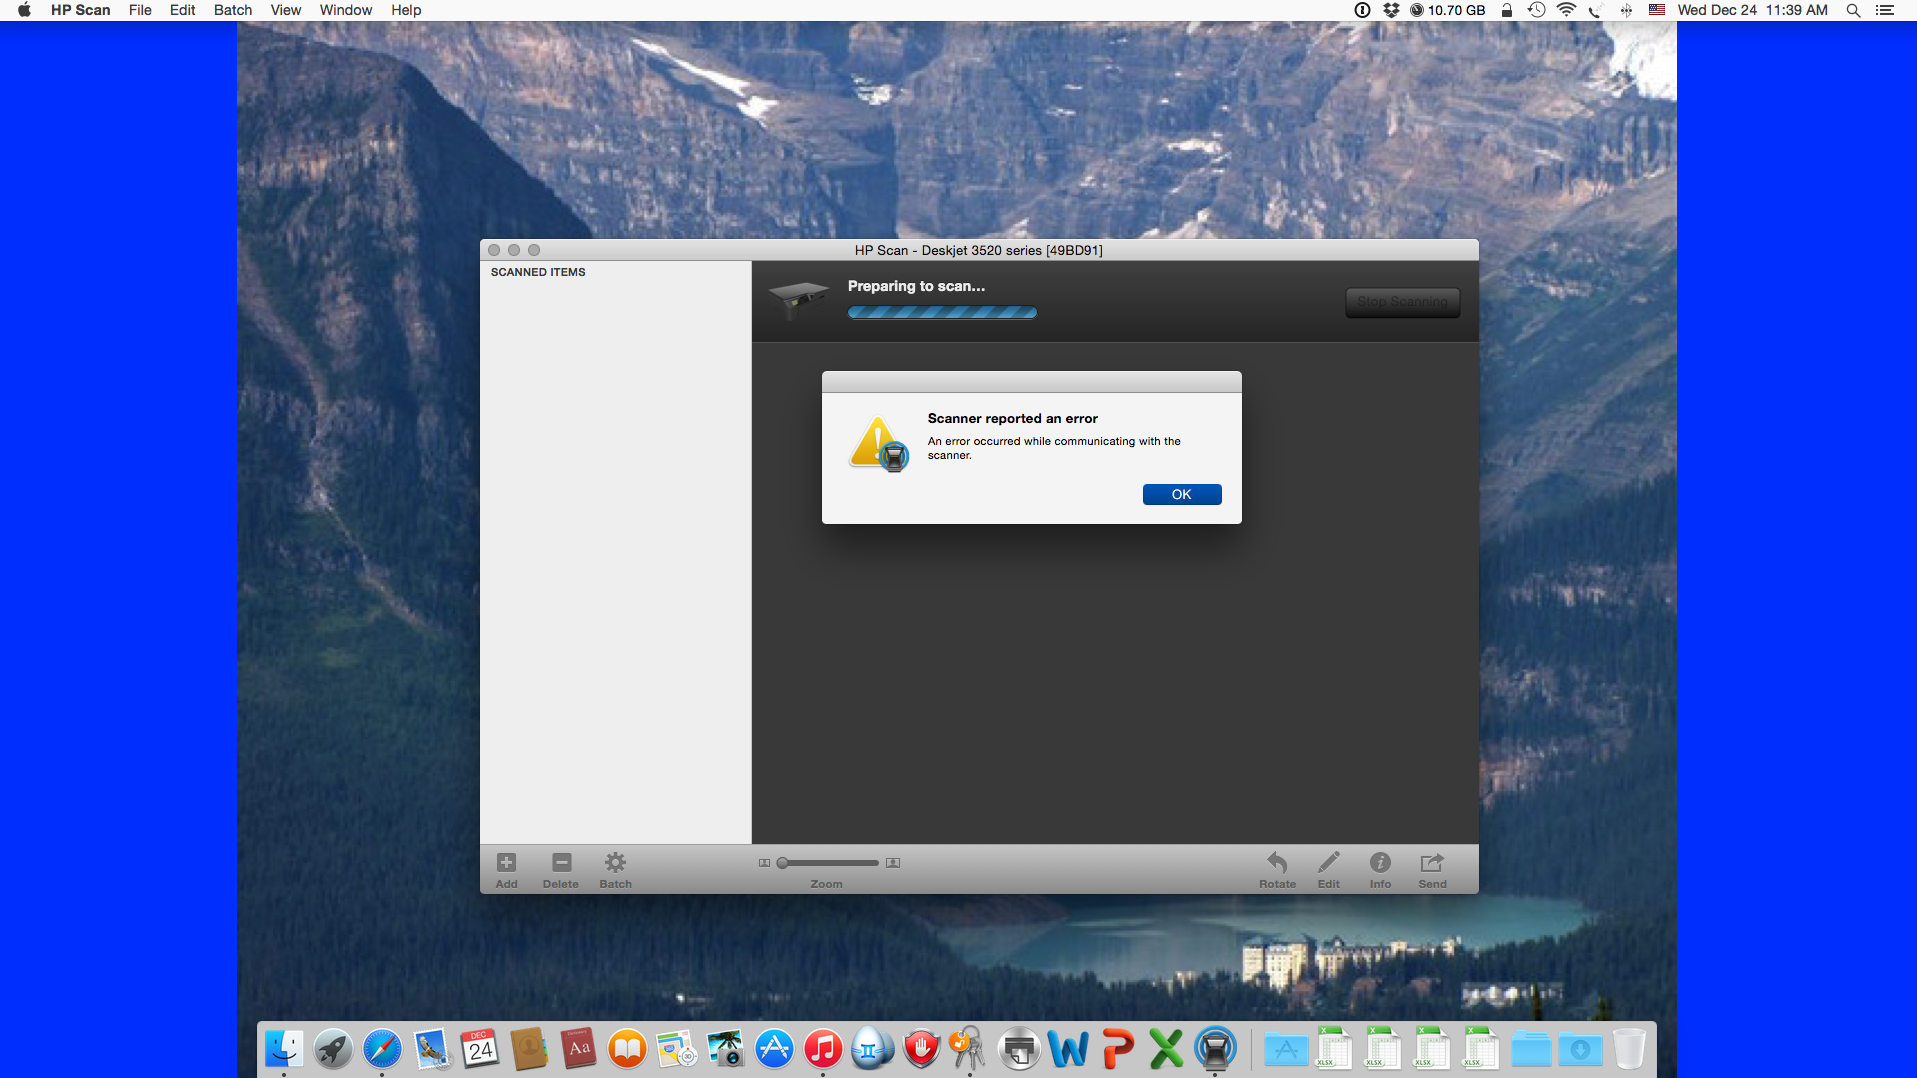 Trouble scanning from HP Scan Utility - Apple Community